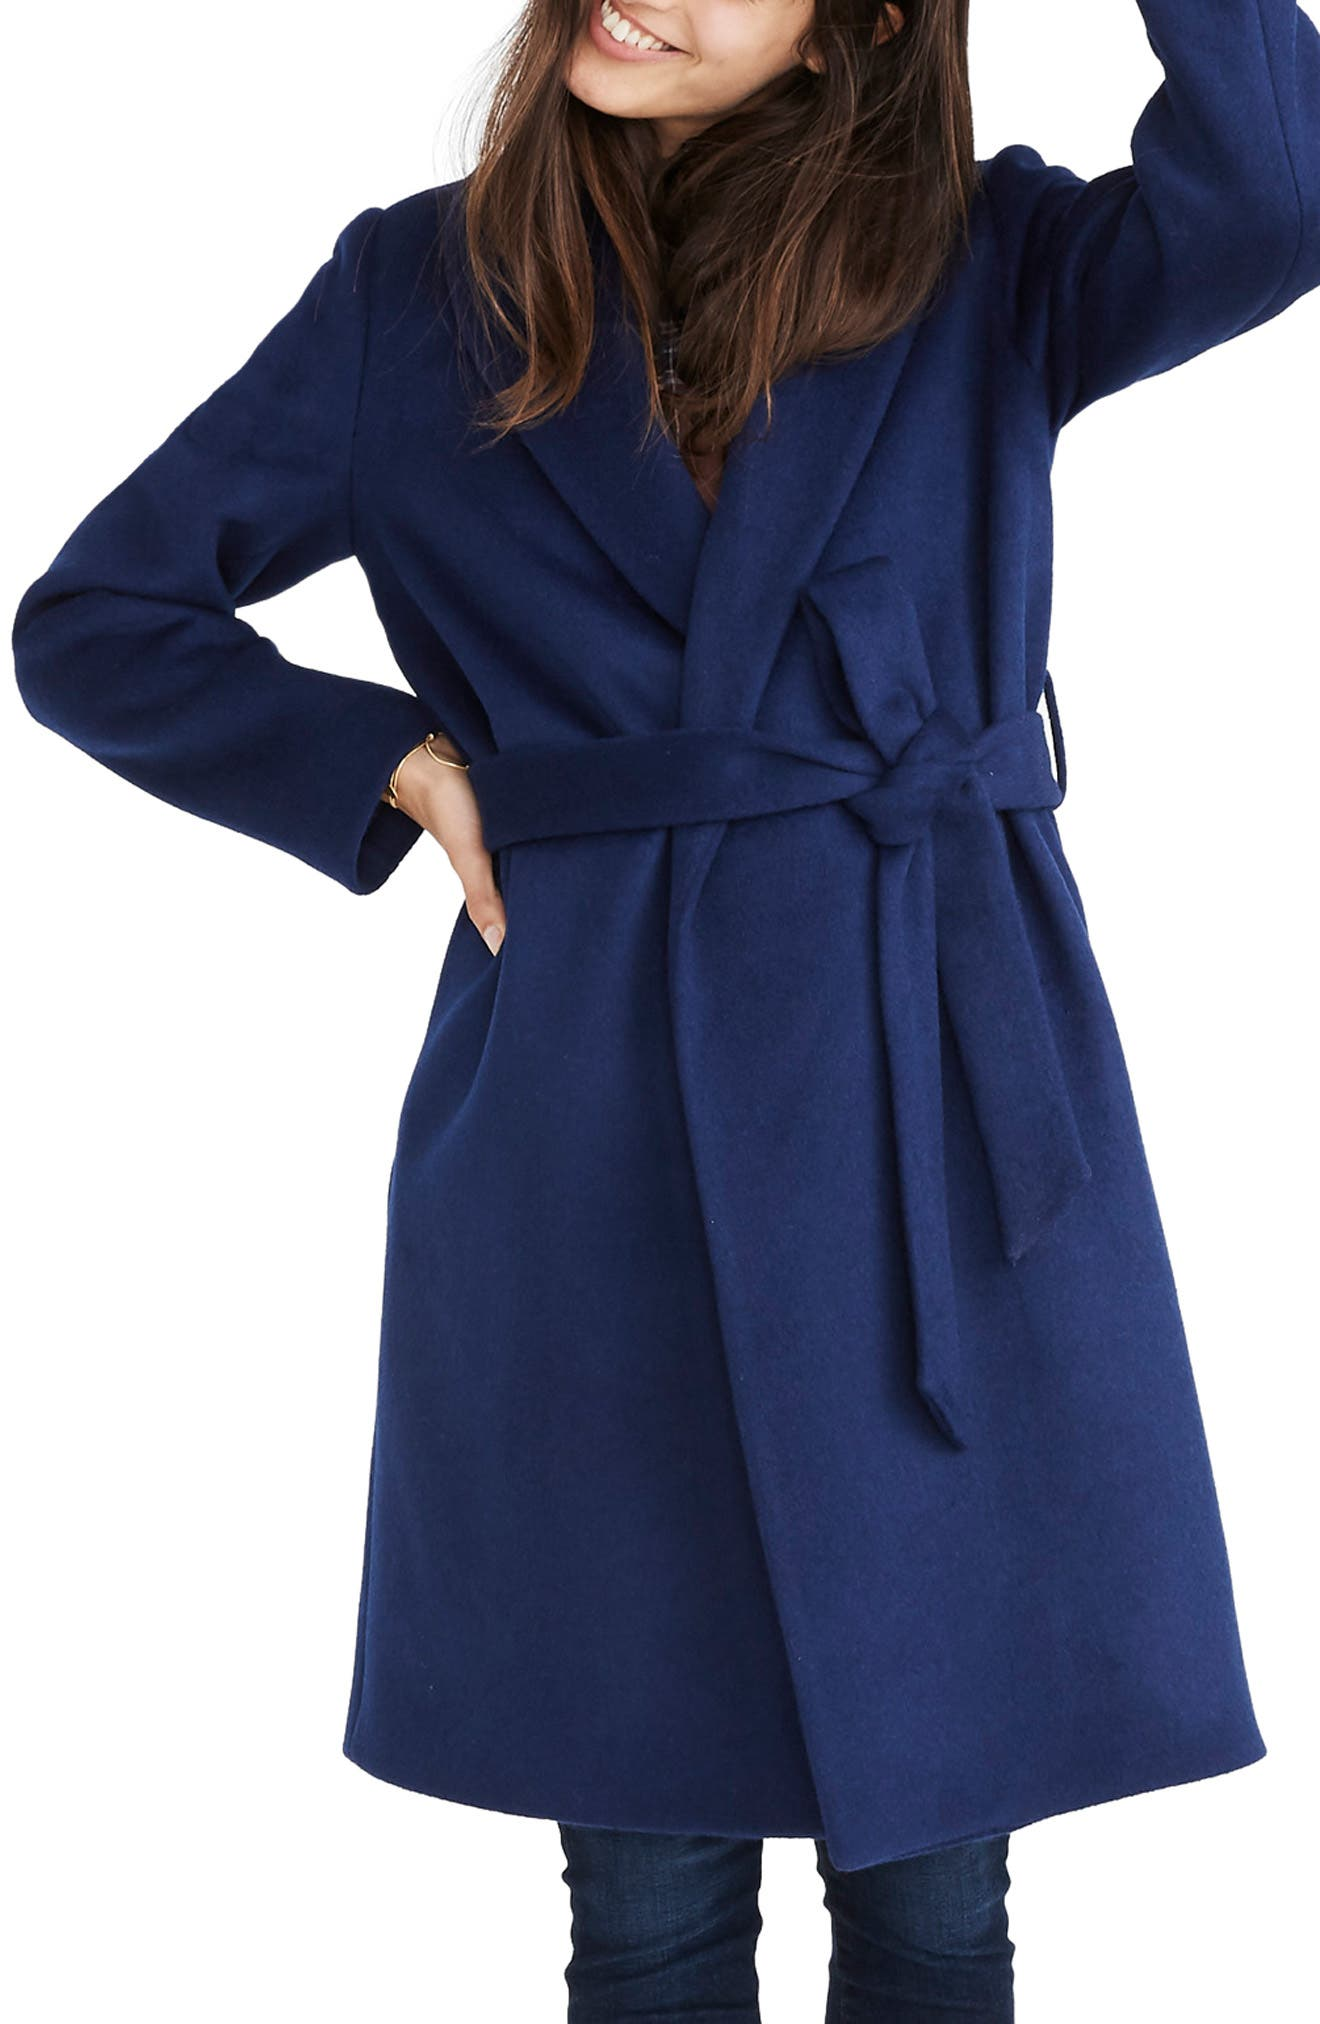 Shawl Collar Wrap Coat,                             Main thumbnail 1, color,                             NIGHT SKY